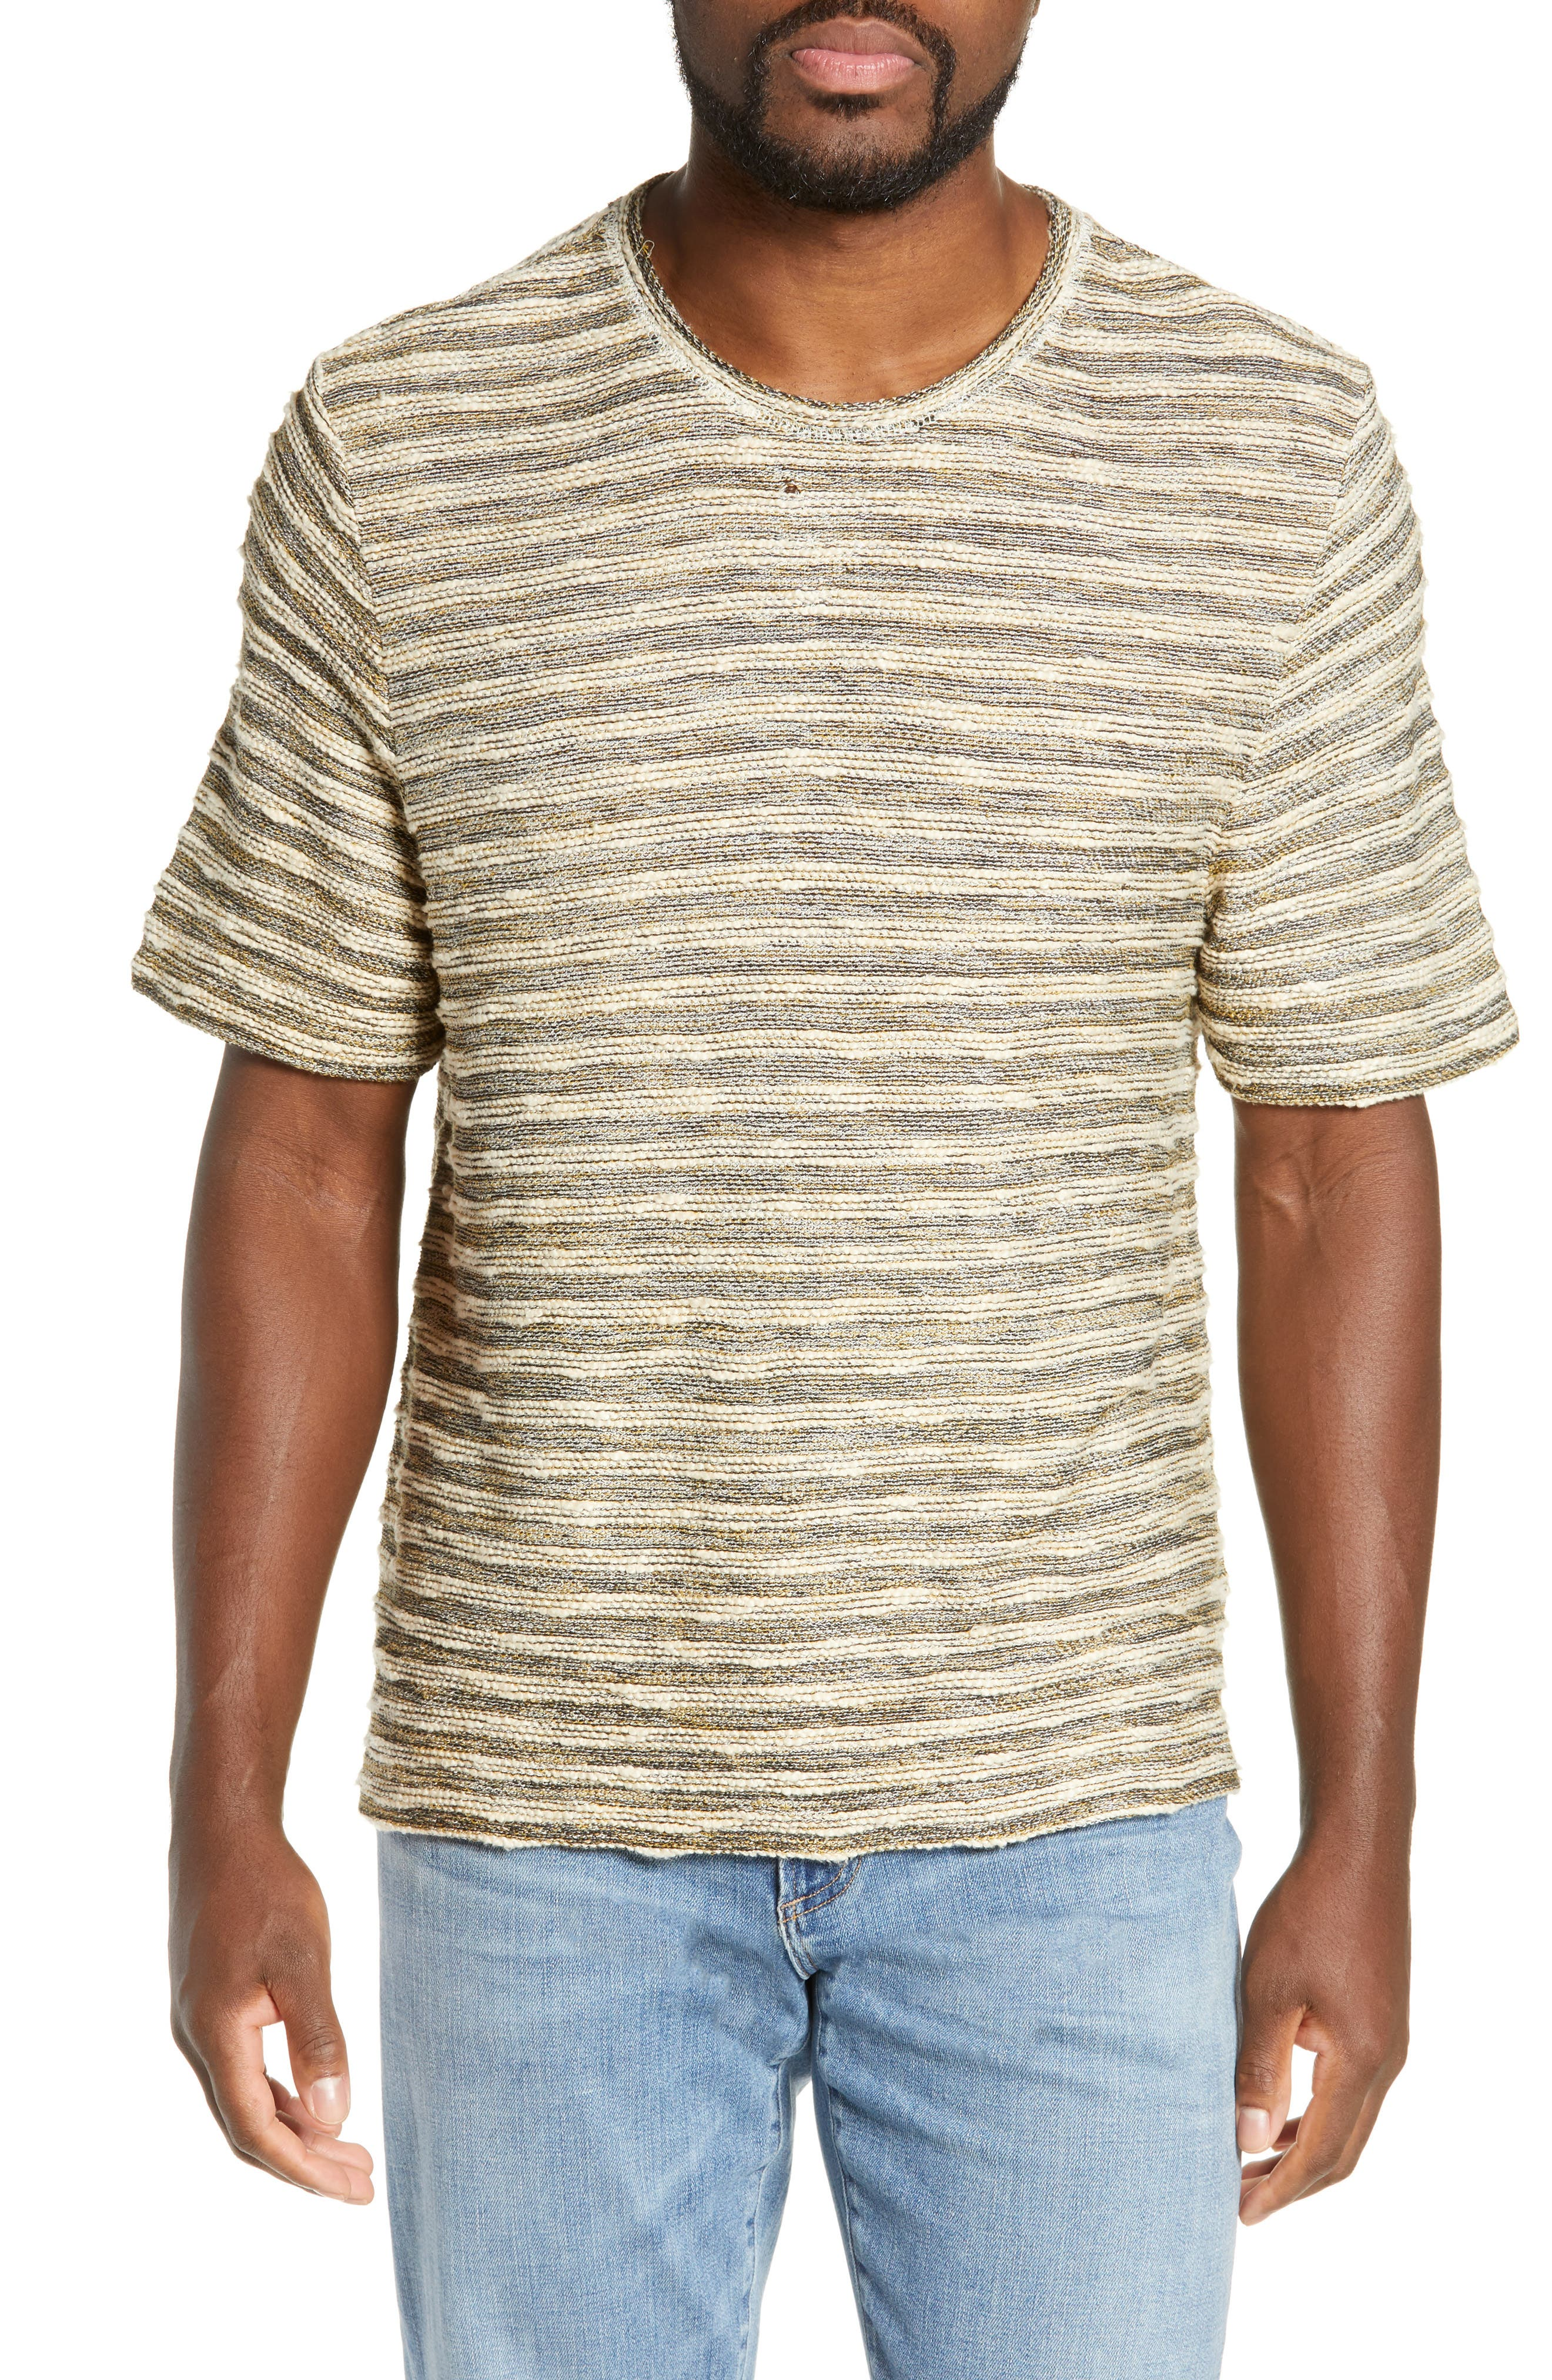 FRYE Stripe Jacquard Regular Fit T-Shirt, Main, color, WHITE